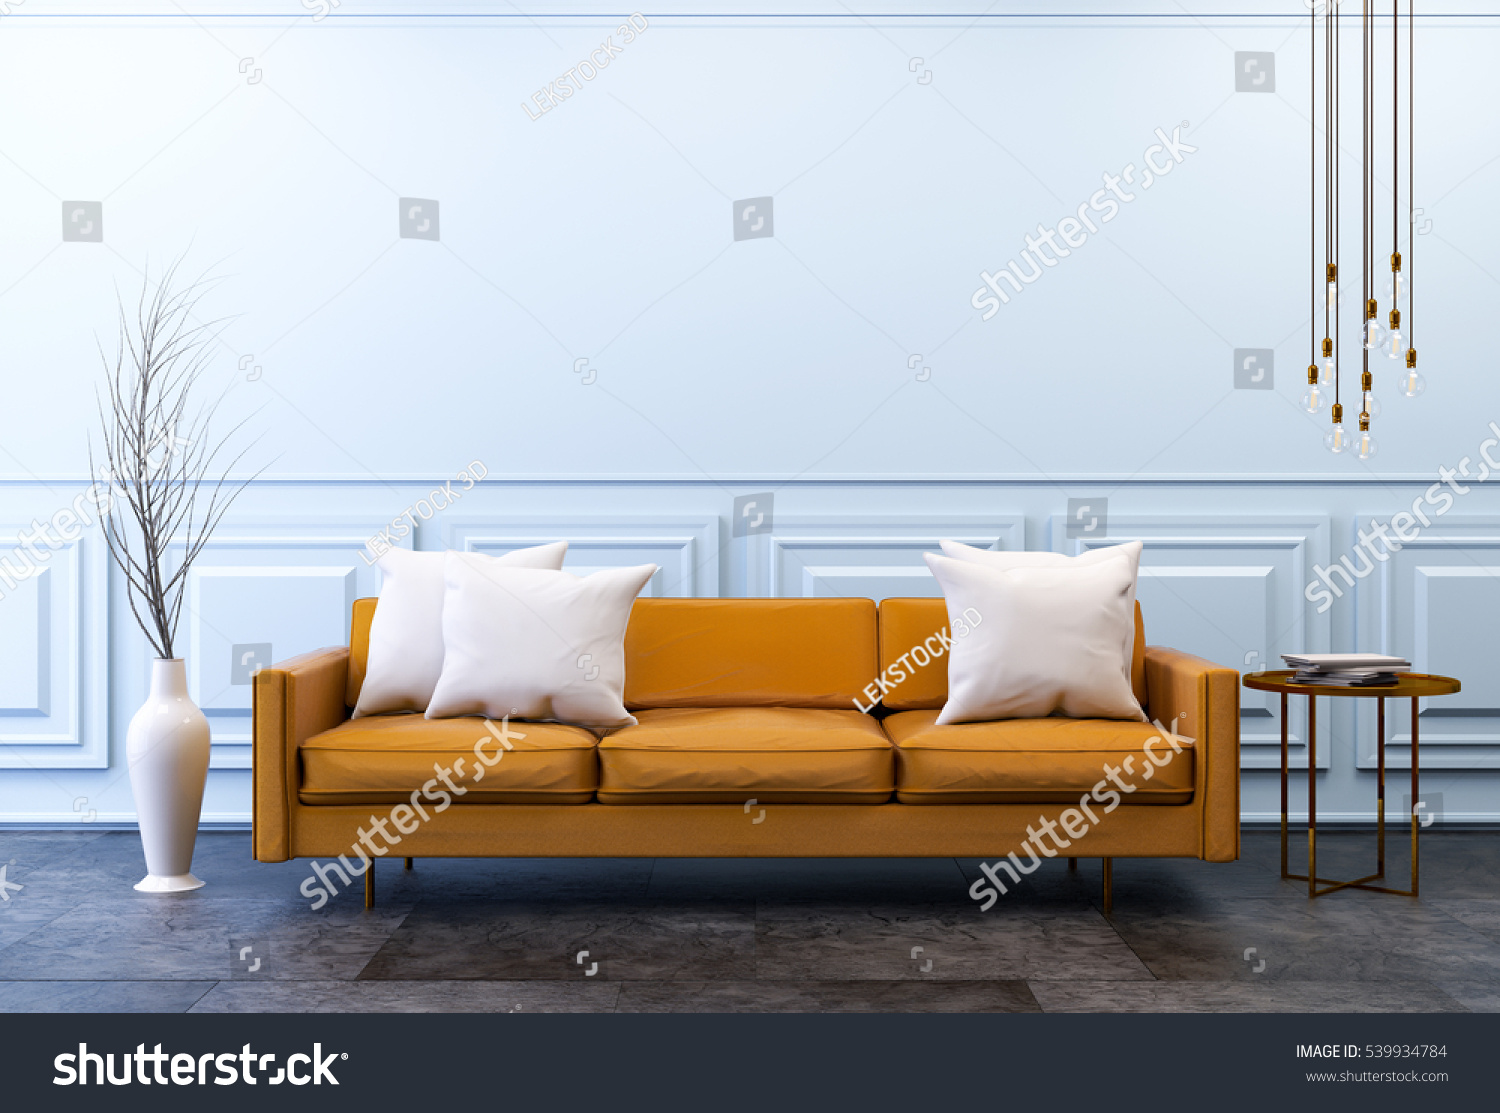 Modern Vintage Interior Living Room Brown Leather Sofa On Dark Concrete Flooring And Classic